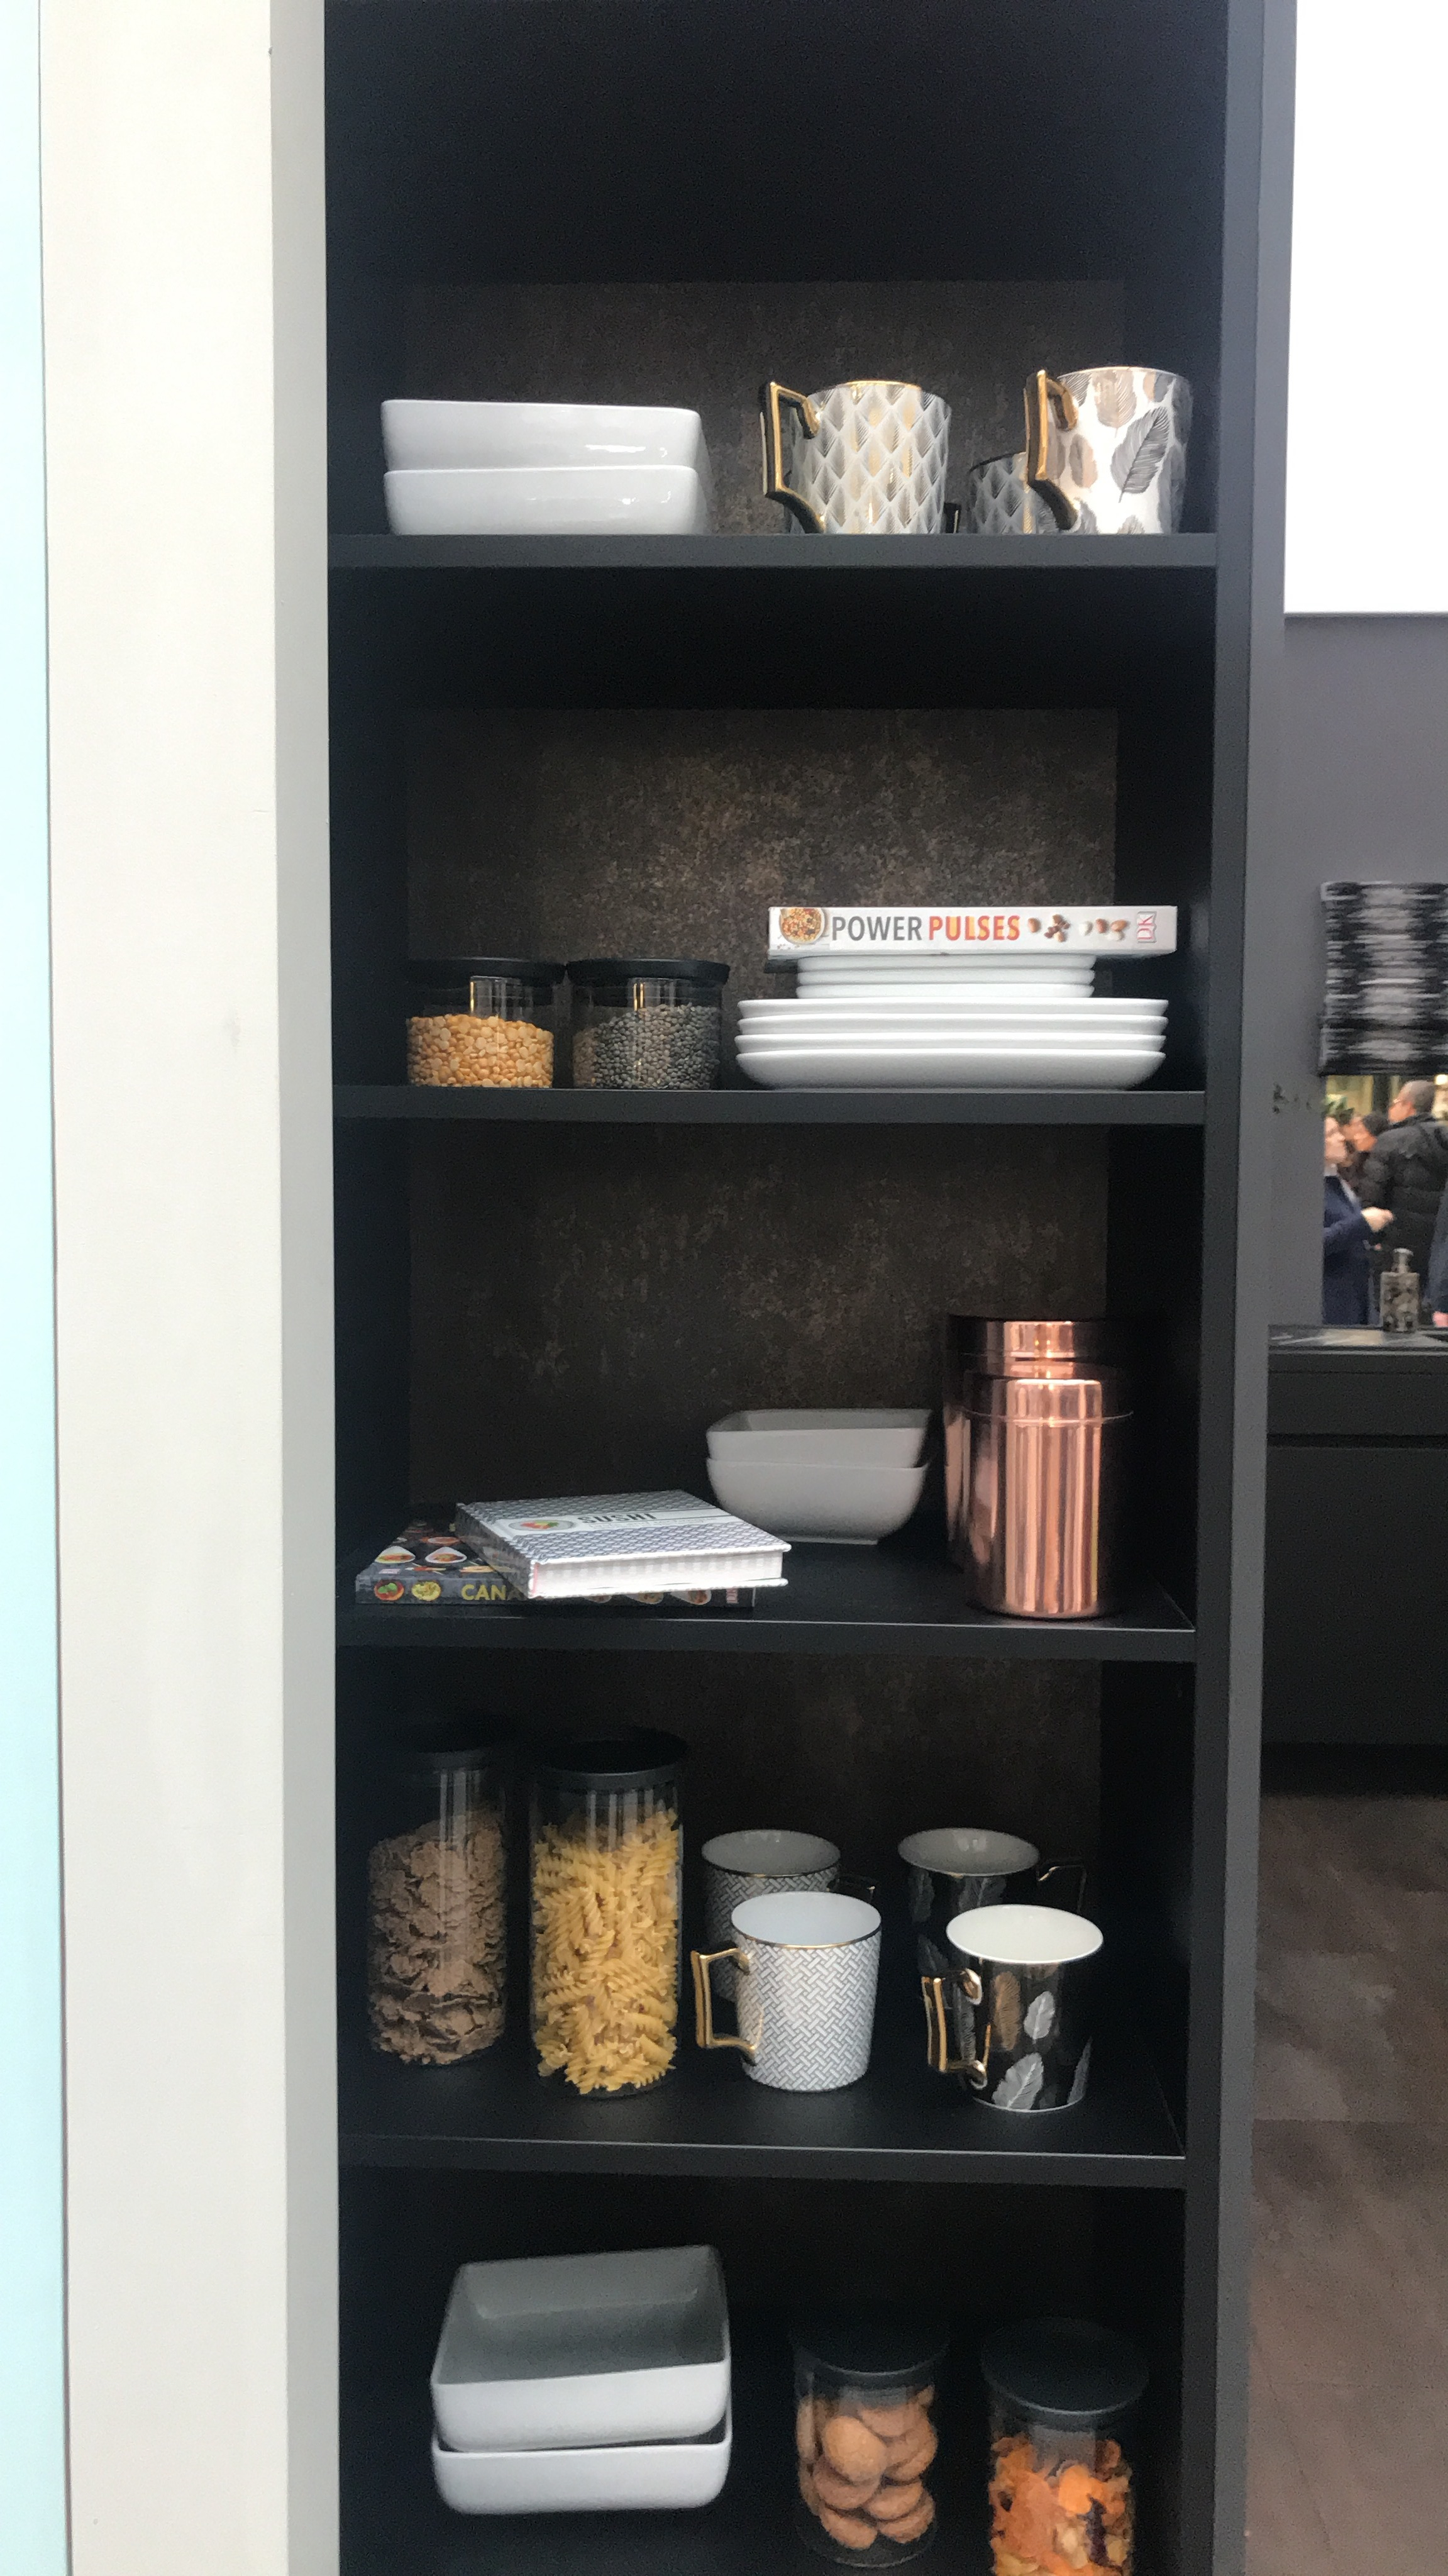 The Good Homes Magazine roomsets at the Ideal Home Show 2018